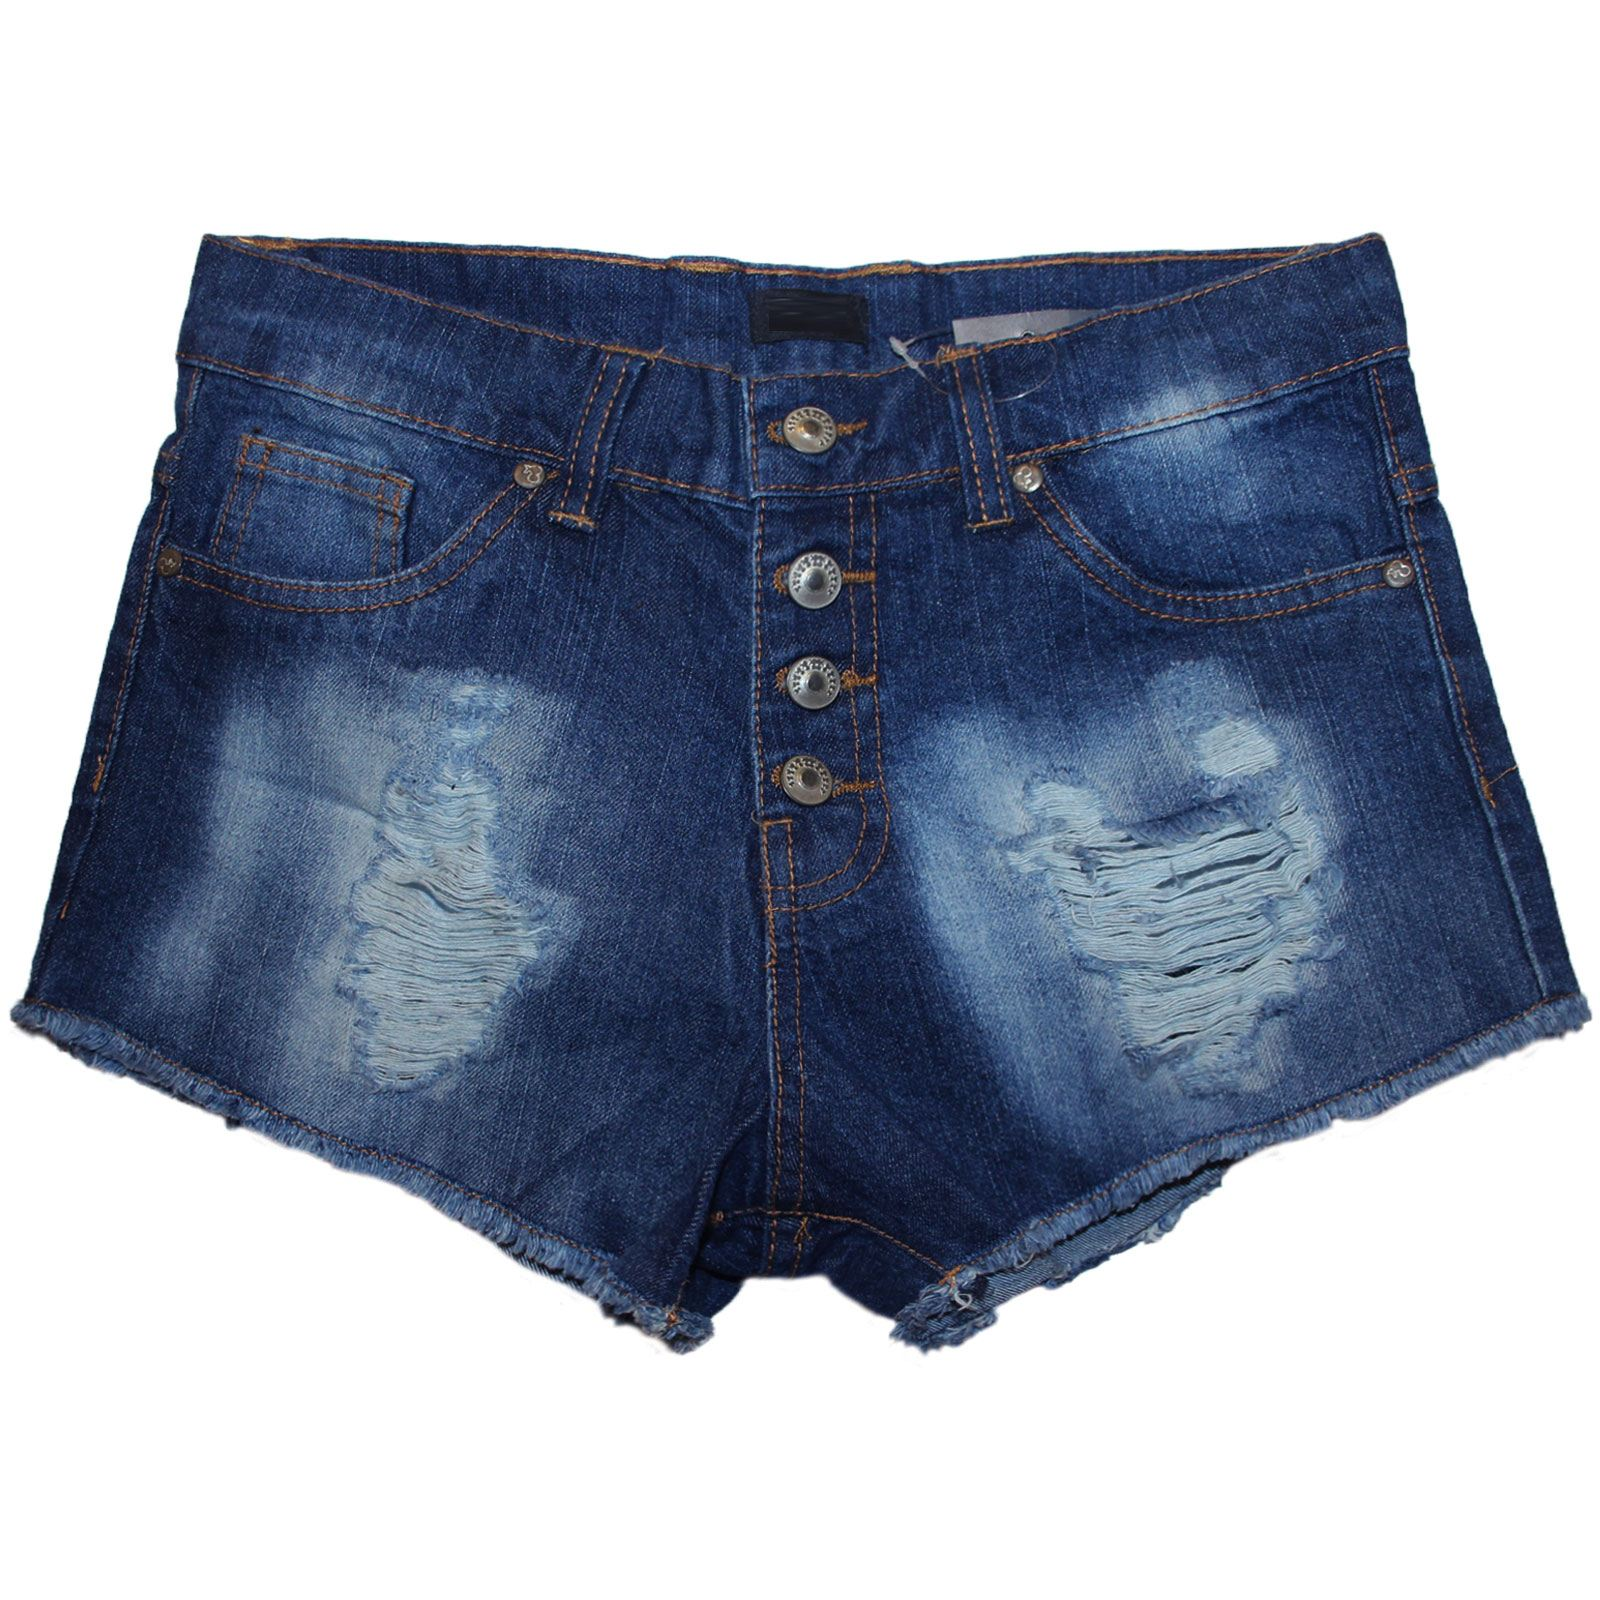 e02559fbe66 ... Shorts High Waisted Ladies Girls Jeans Ripped Summer Hot Pants Blue  Wash 32. About this product. Picture 1 of 3; Picture 2 of 3 ...